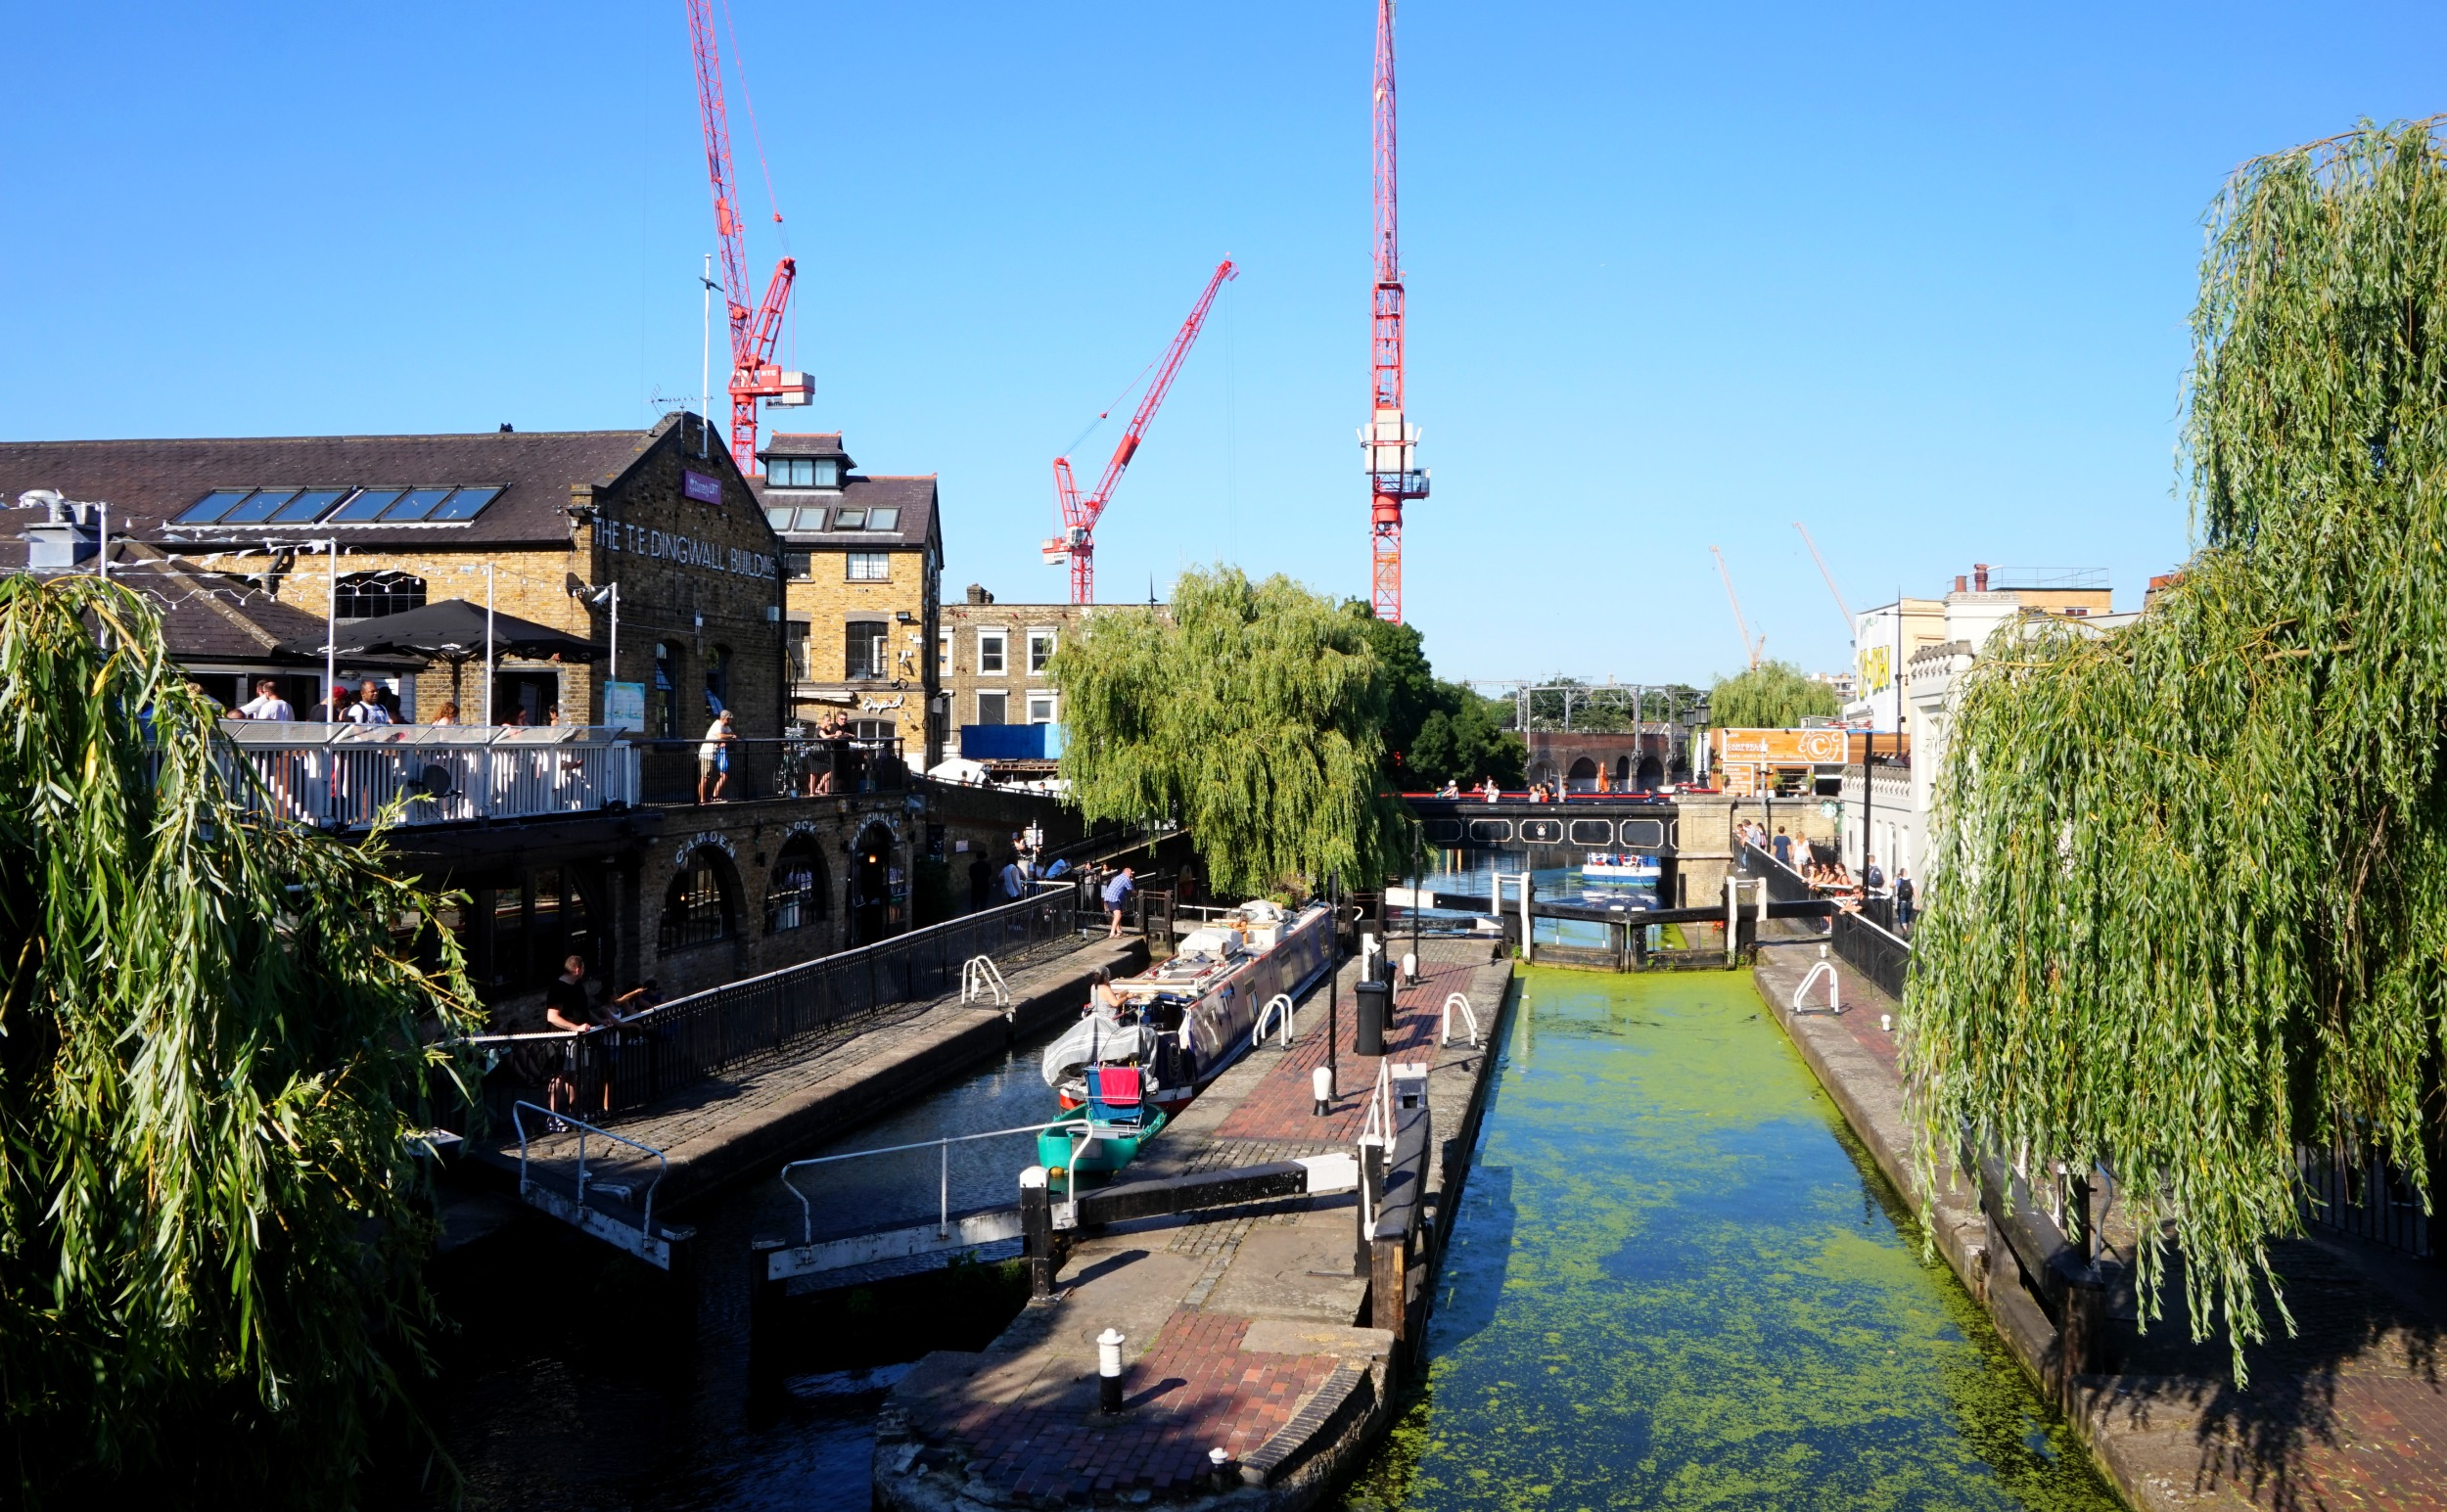 Regents-Canal-58